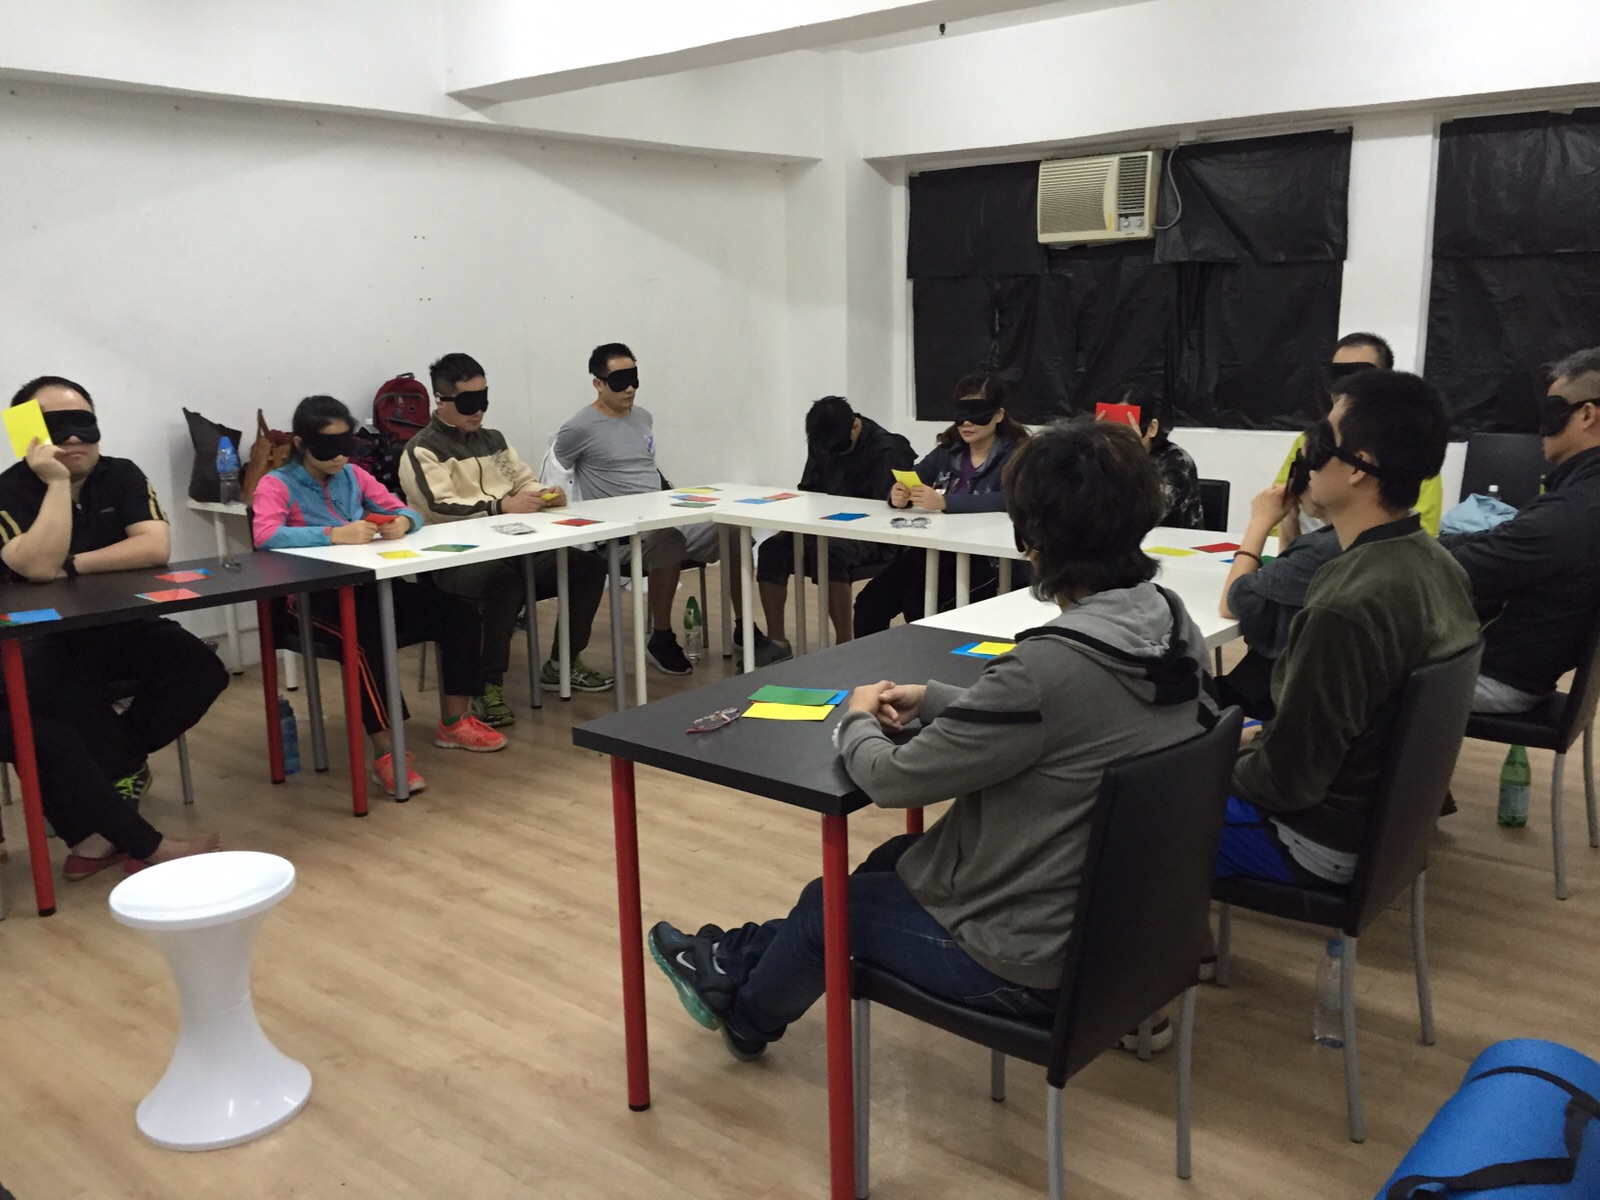 midbrain activation training for adults